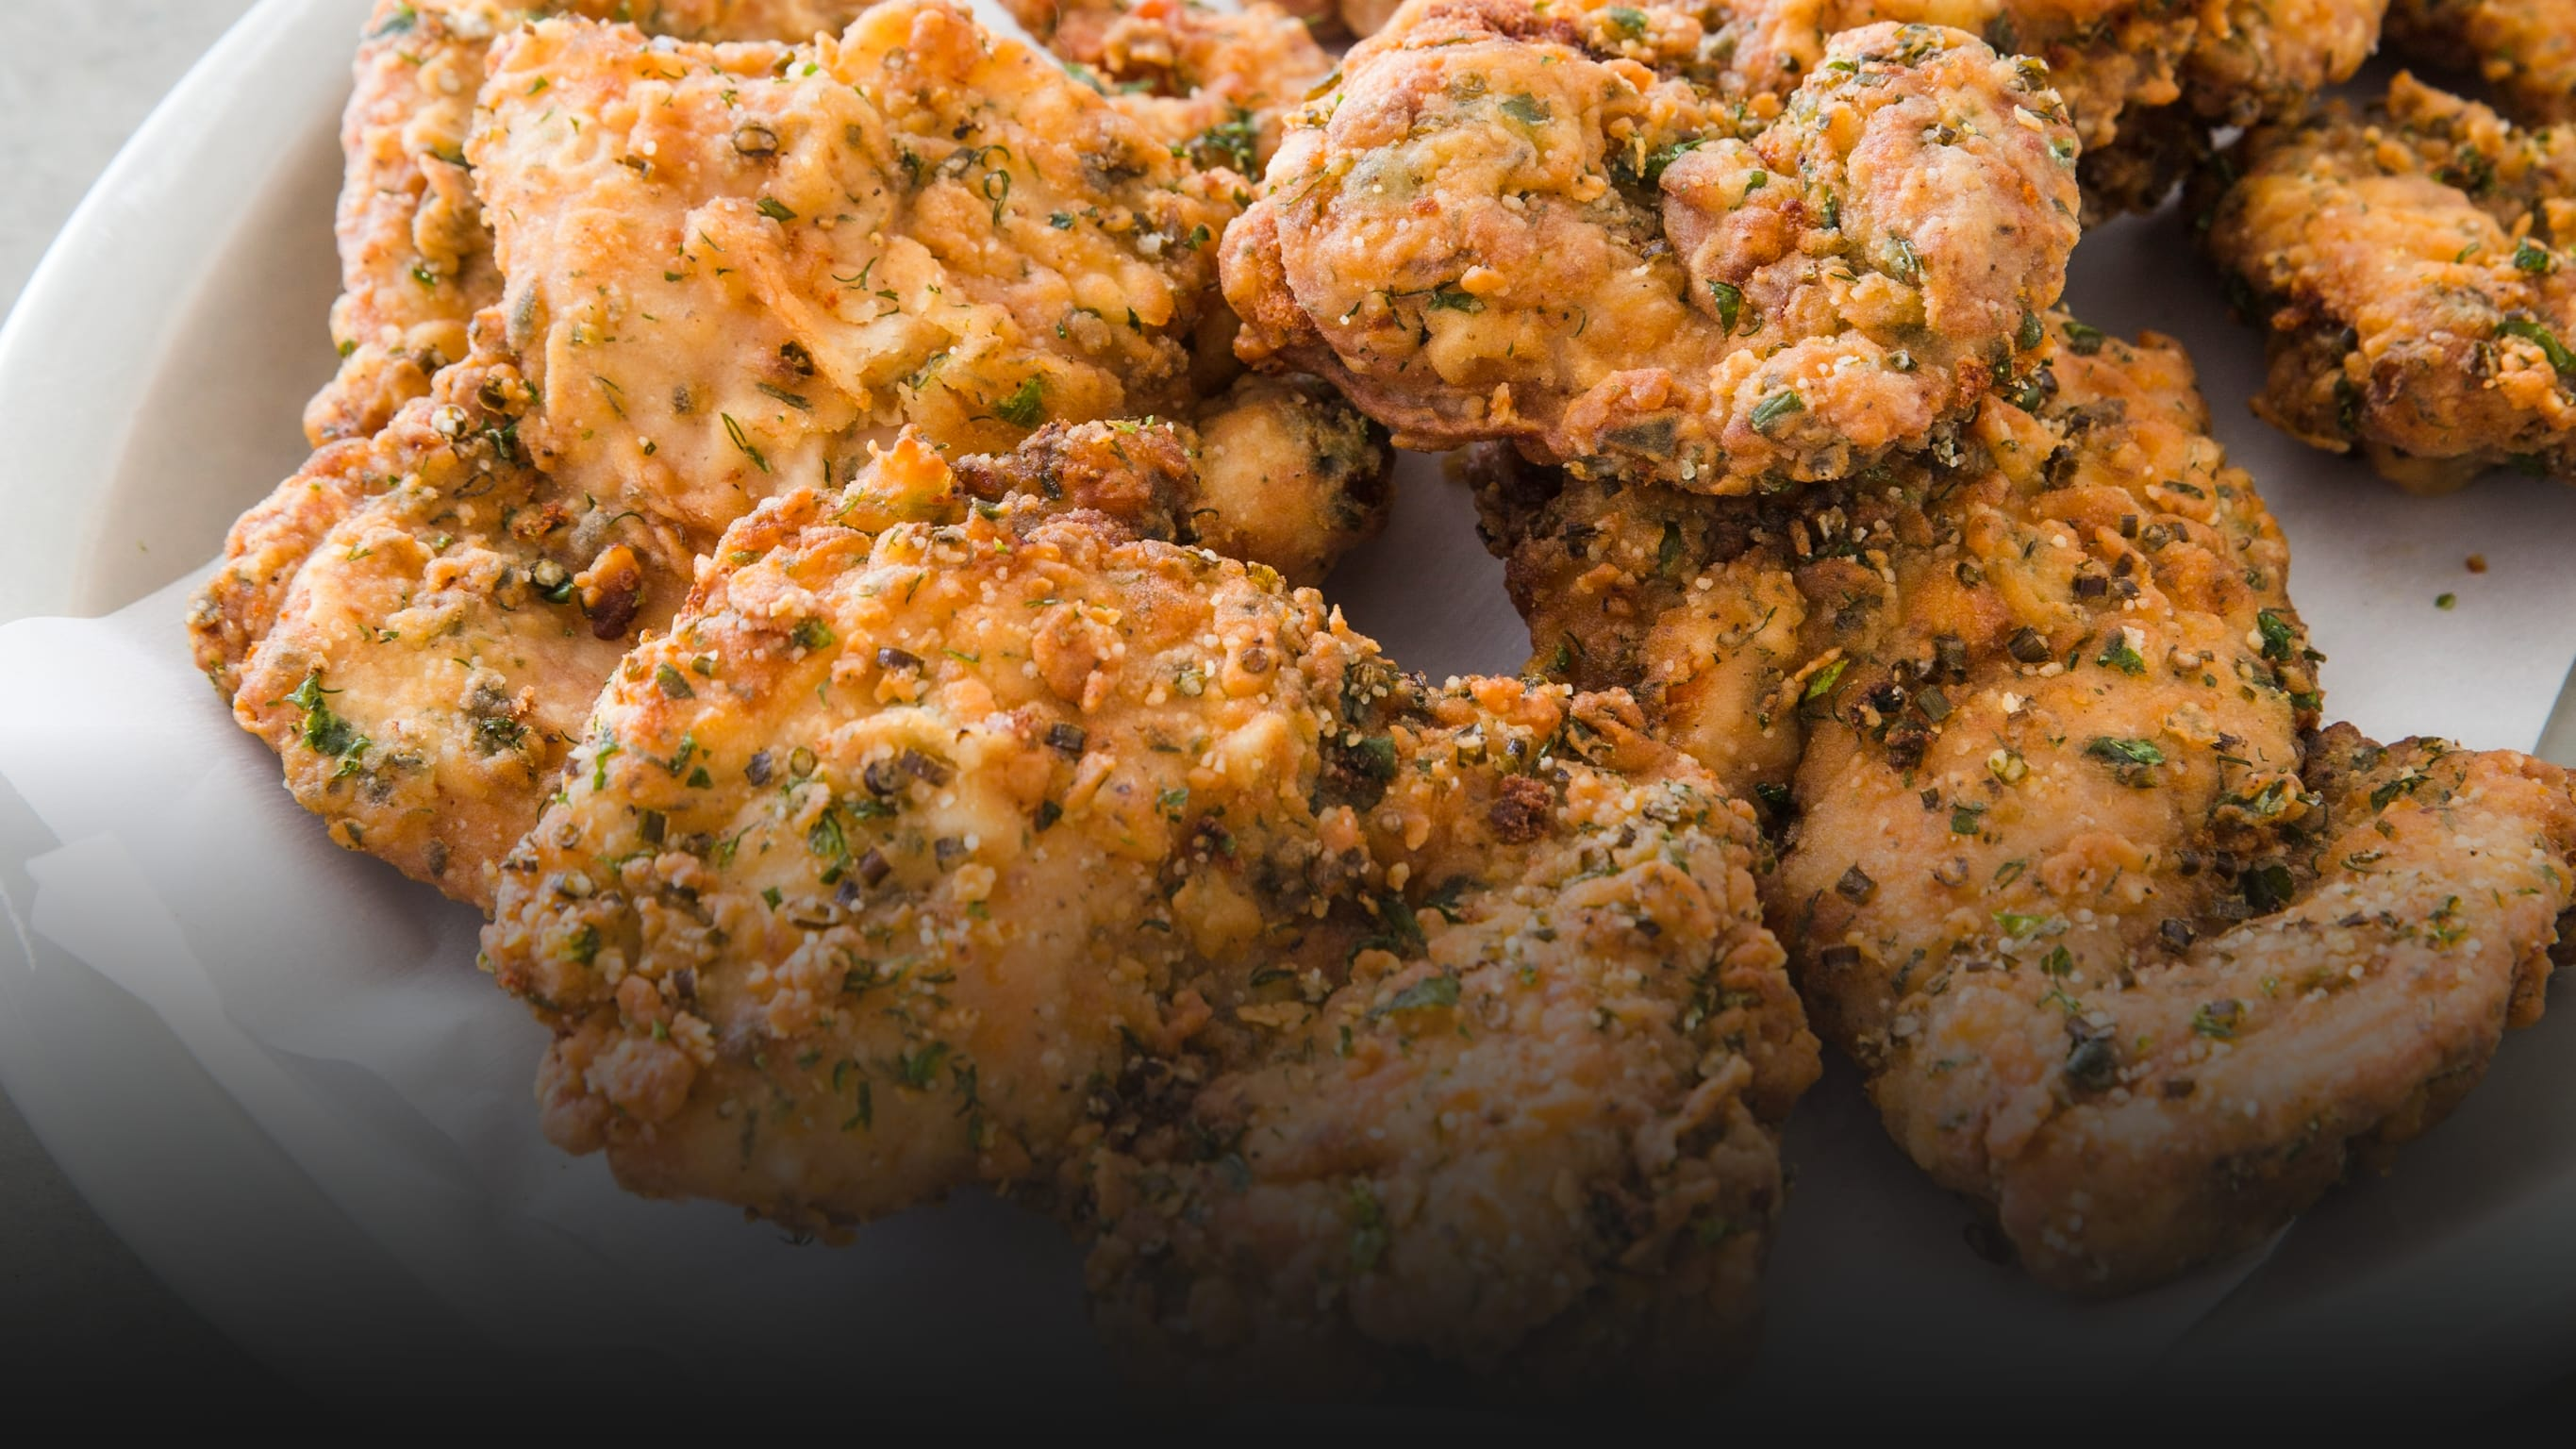 Fried Chicken Is Better with Ranch Seasonings in the Batter